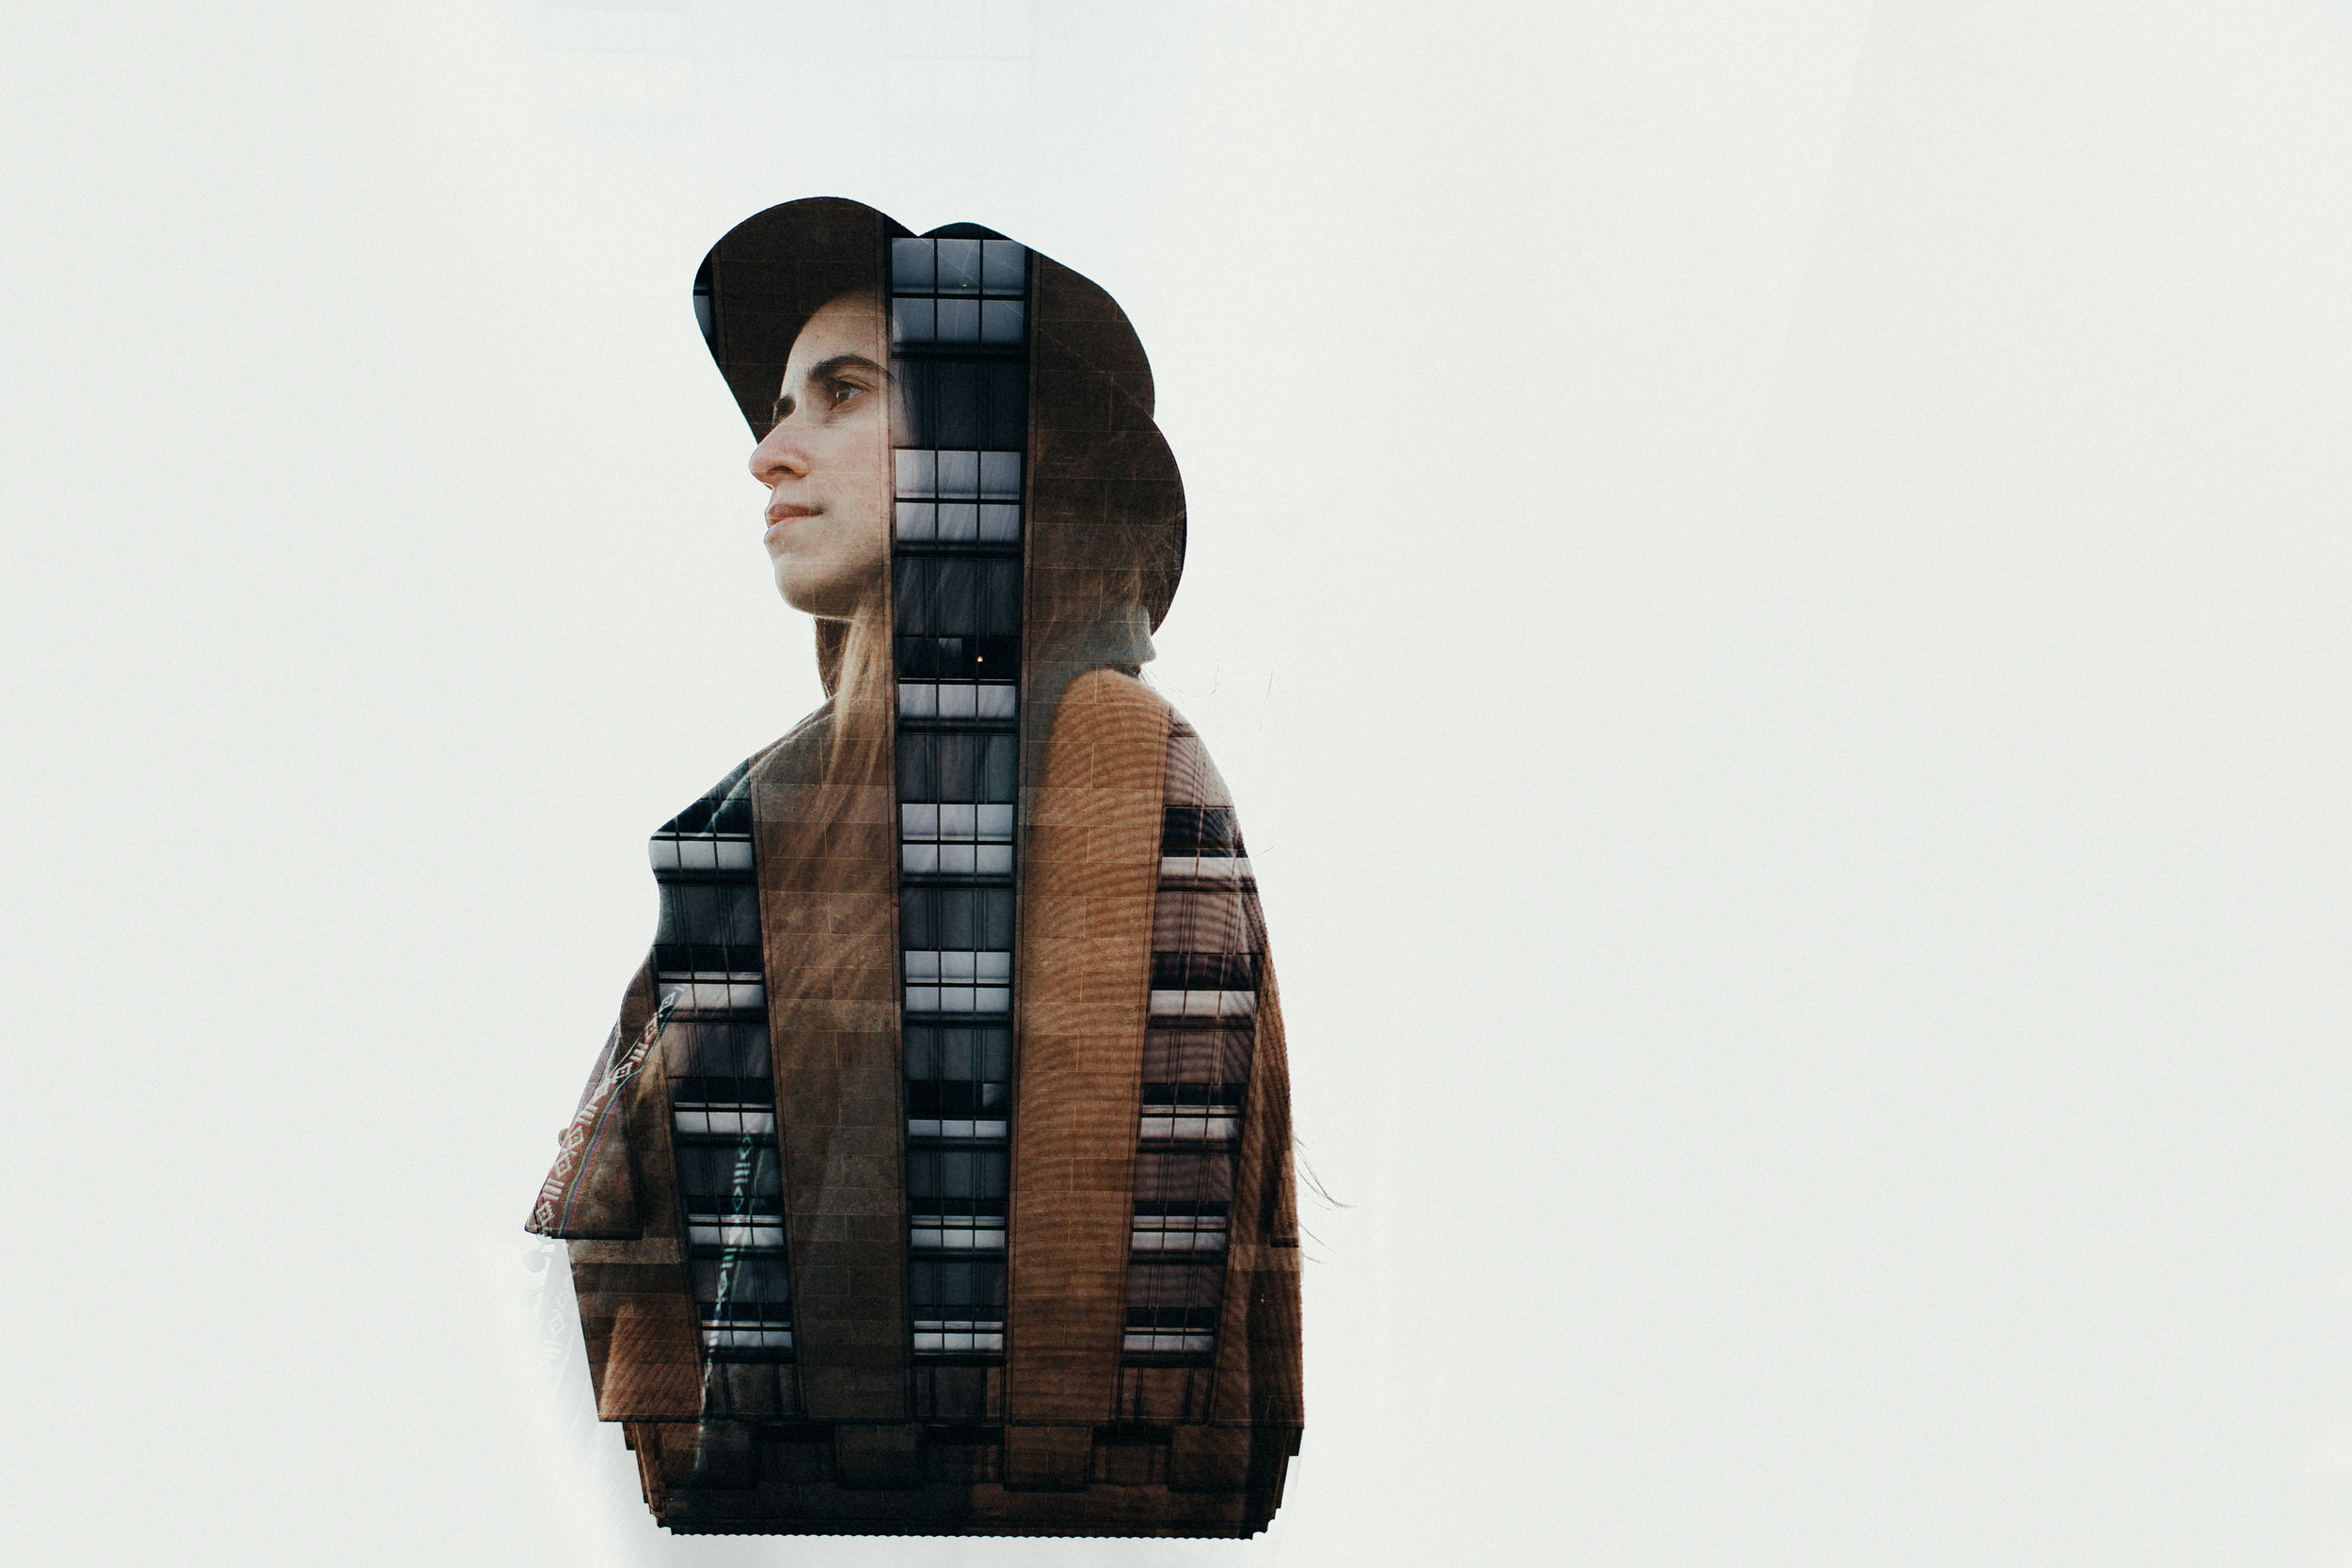 double-exposure-32-Edit.jpg